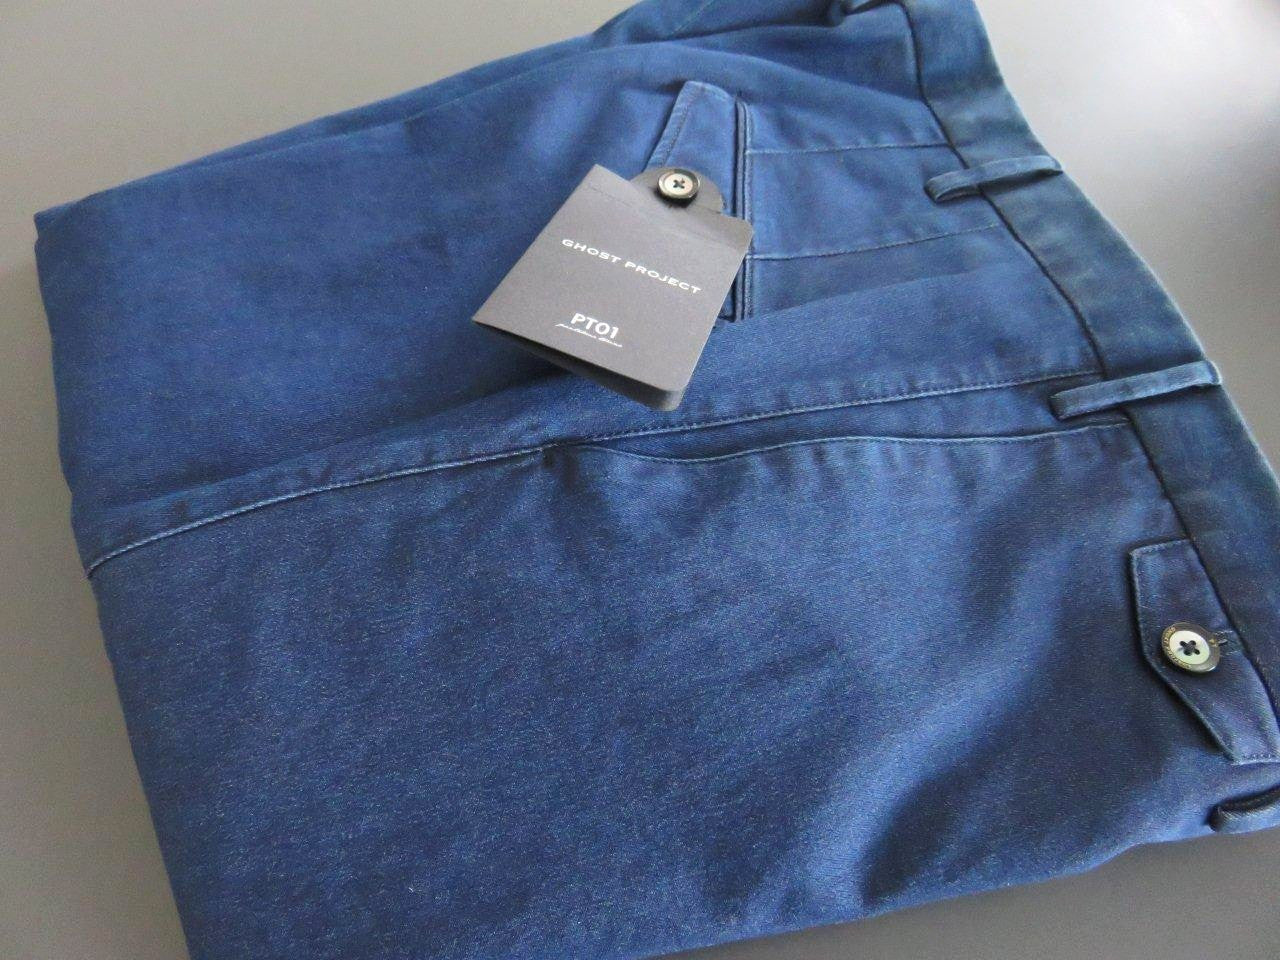 PT01 Pantaloni Torino - Model Ghost - bluejeans